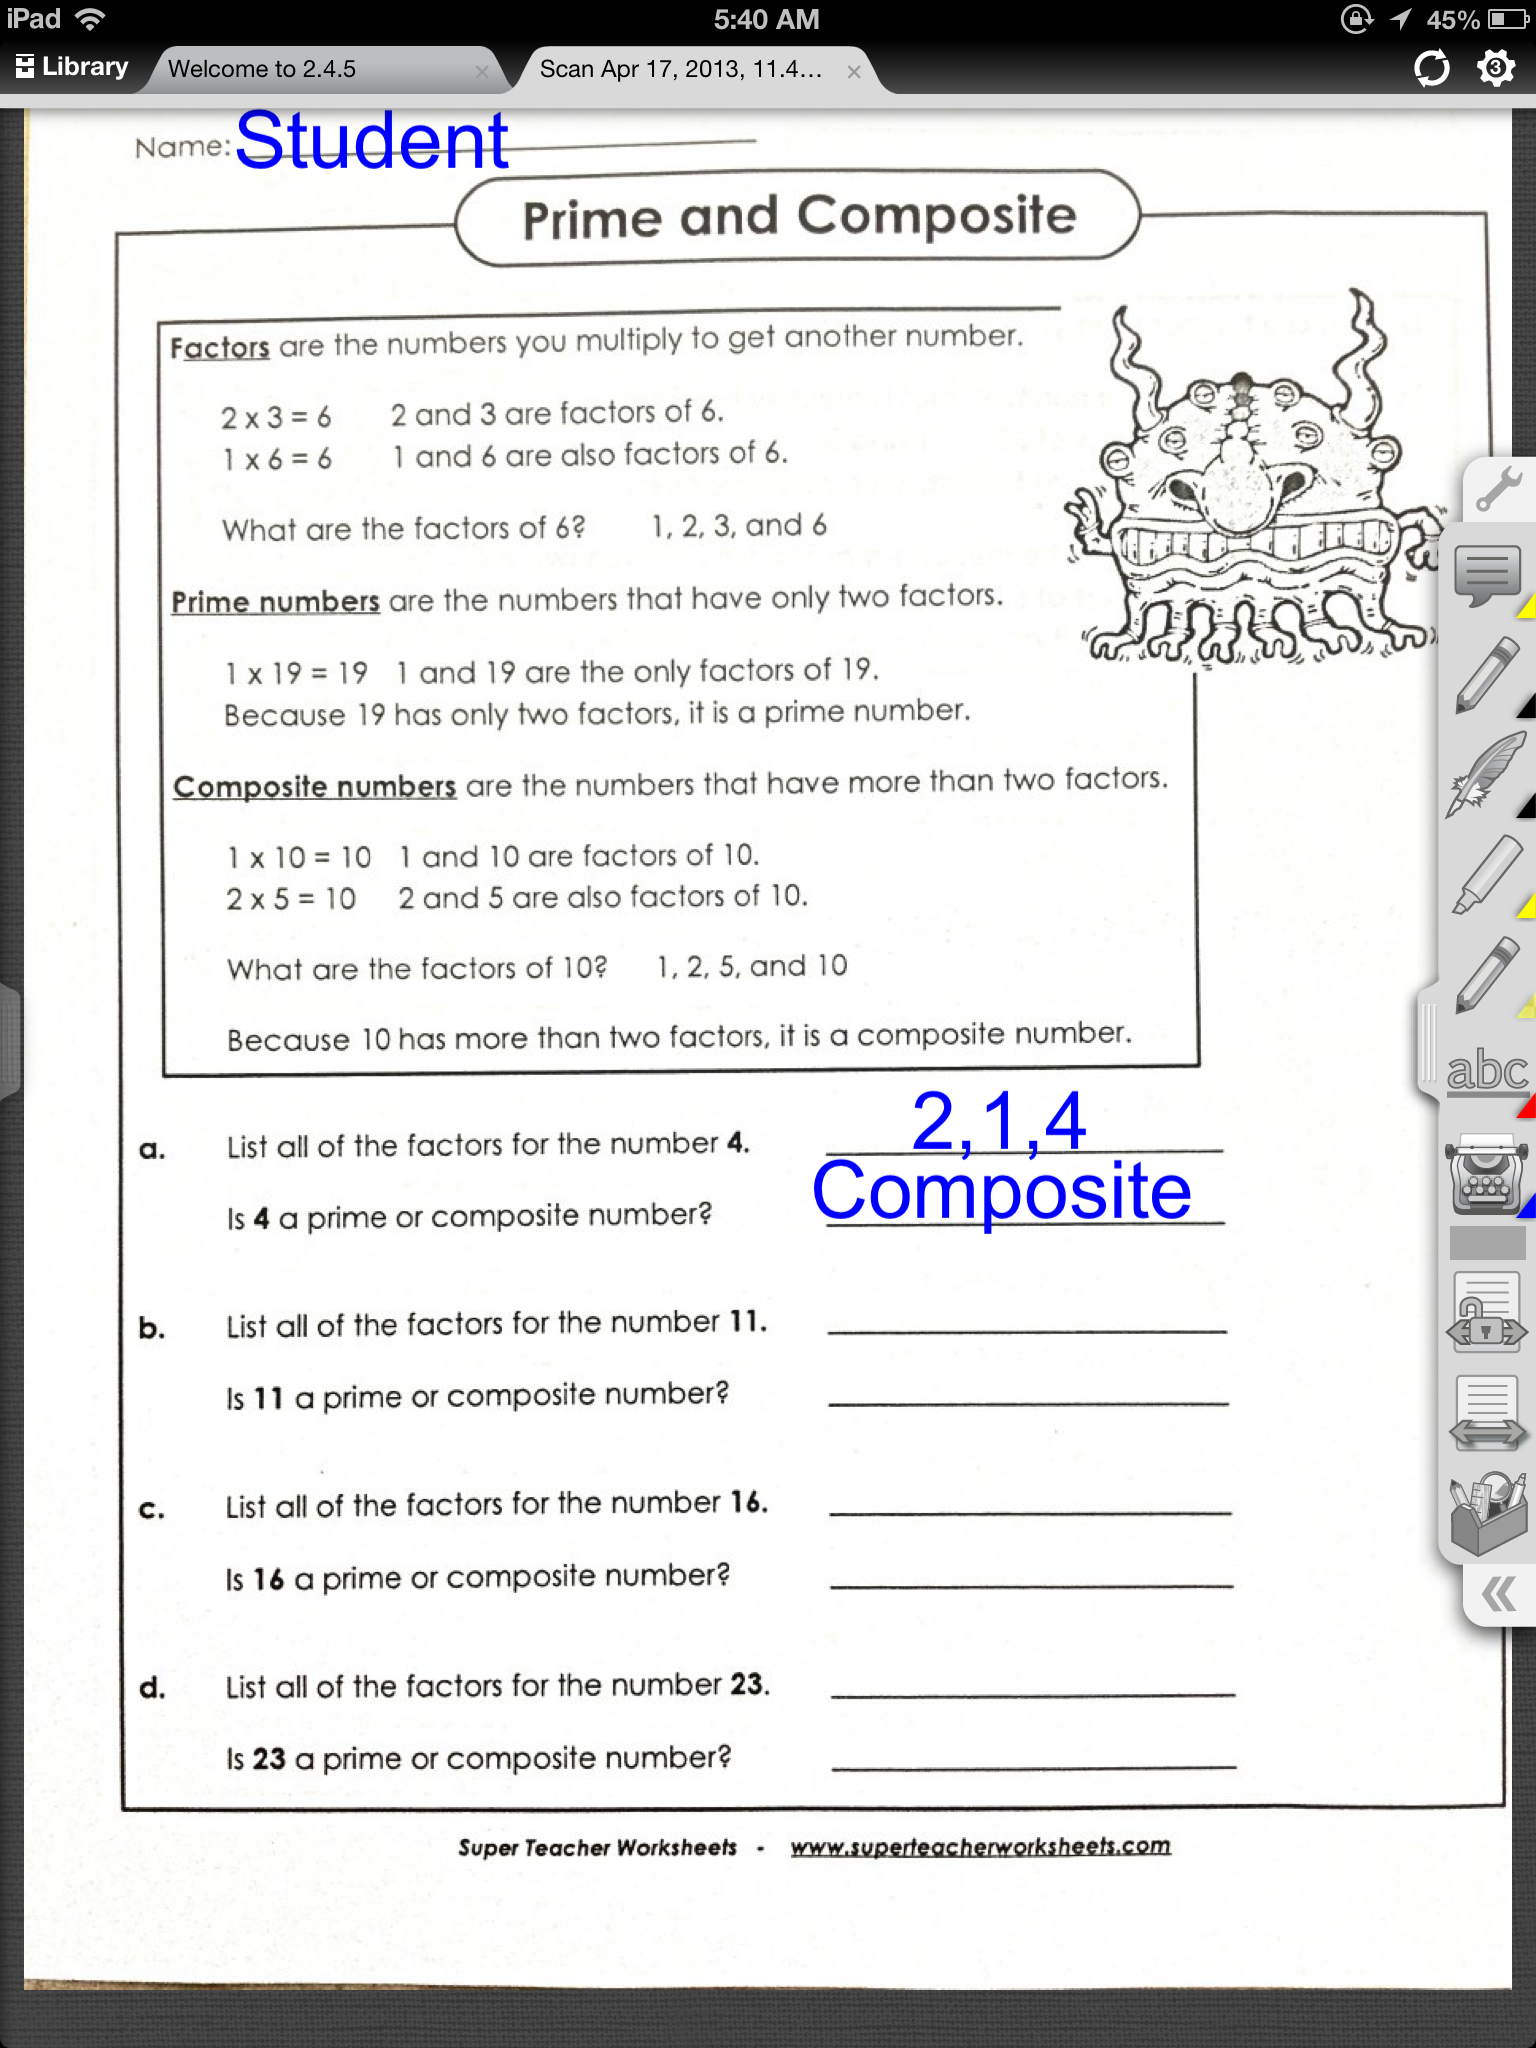 Teacher S Worksheets : Iannotate app on sale for teacher appreciation week ot s